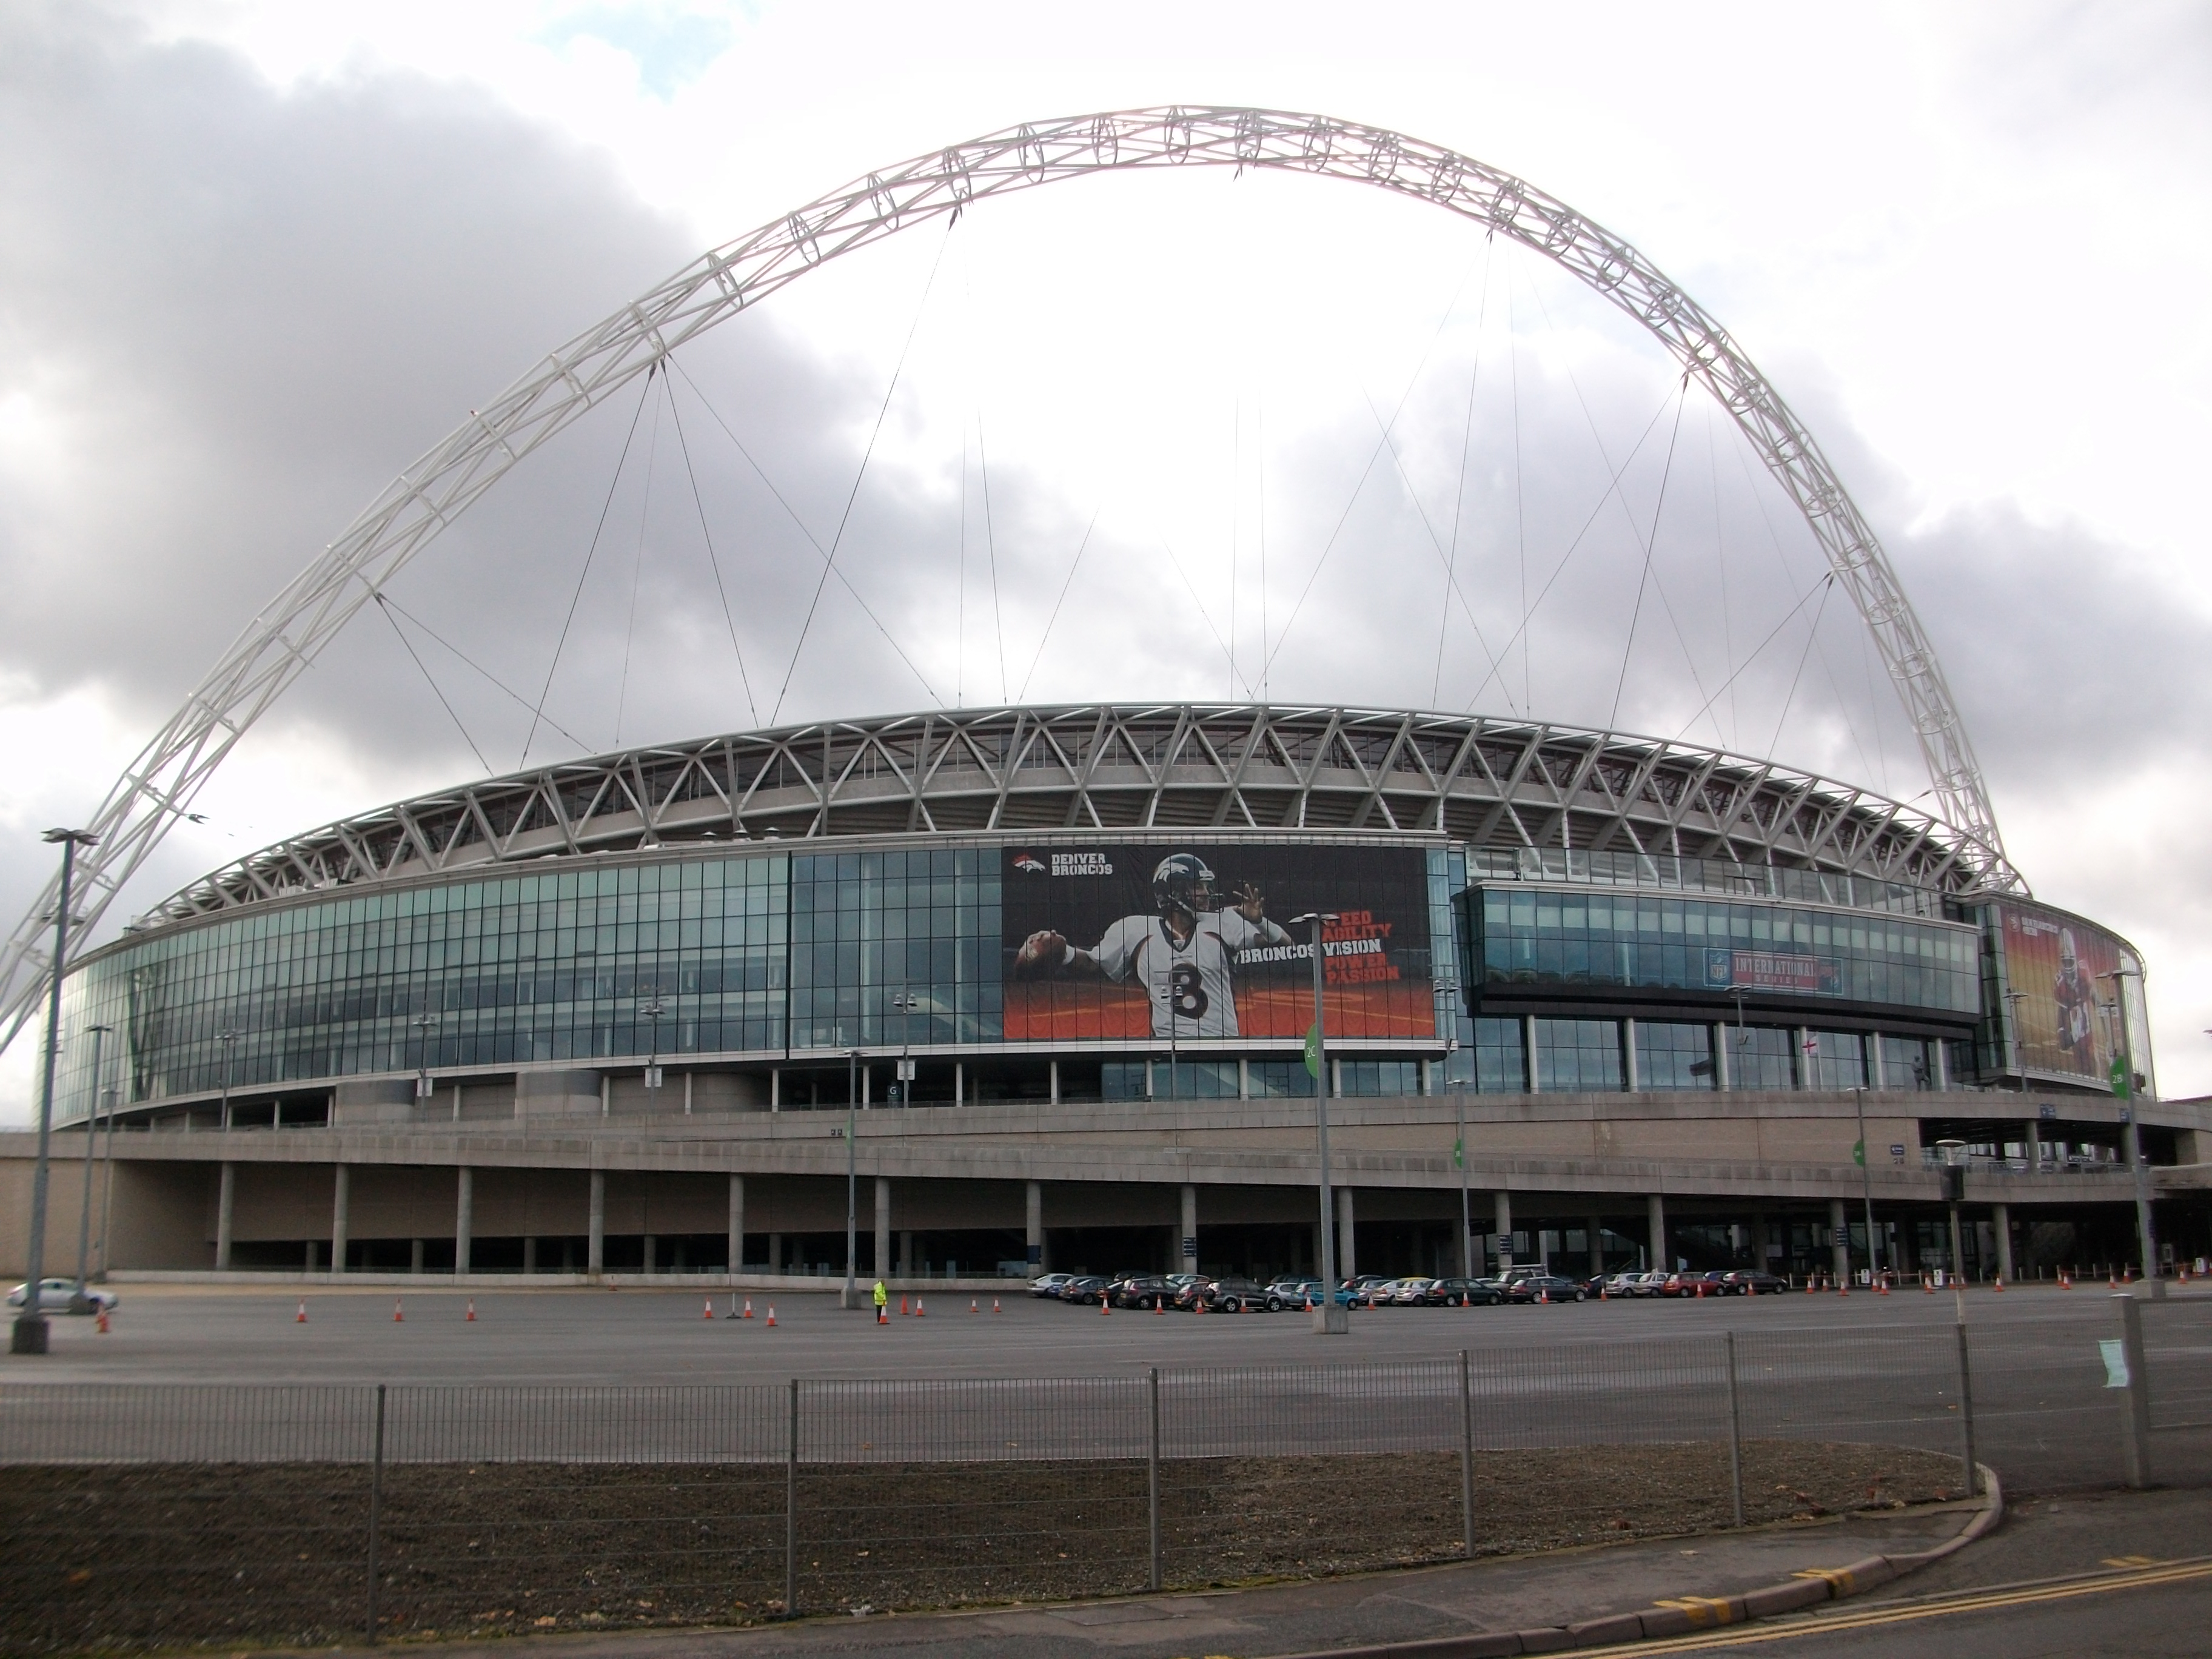 wembley stadium essay Originally scheduled to take place at tottenham stadium, the london tilt between the seattle seahawks and oakland raiders has moved to wembley stadium.